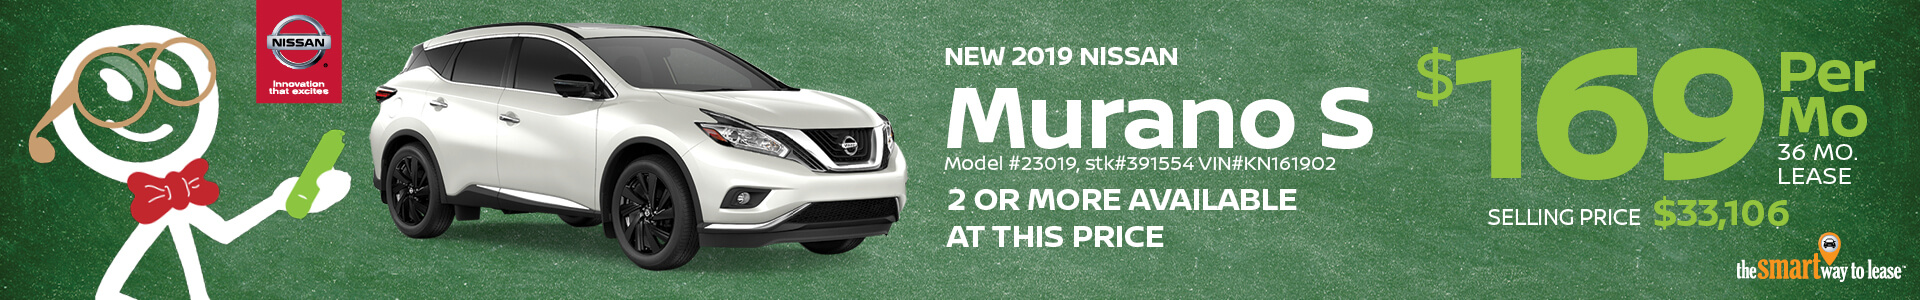 2019 Nissan Murano Lease for $169